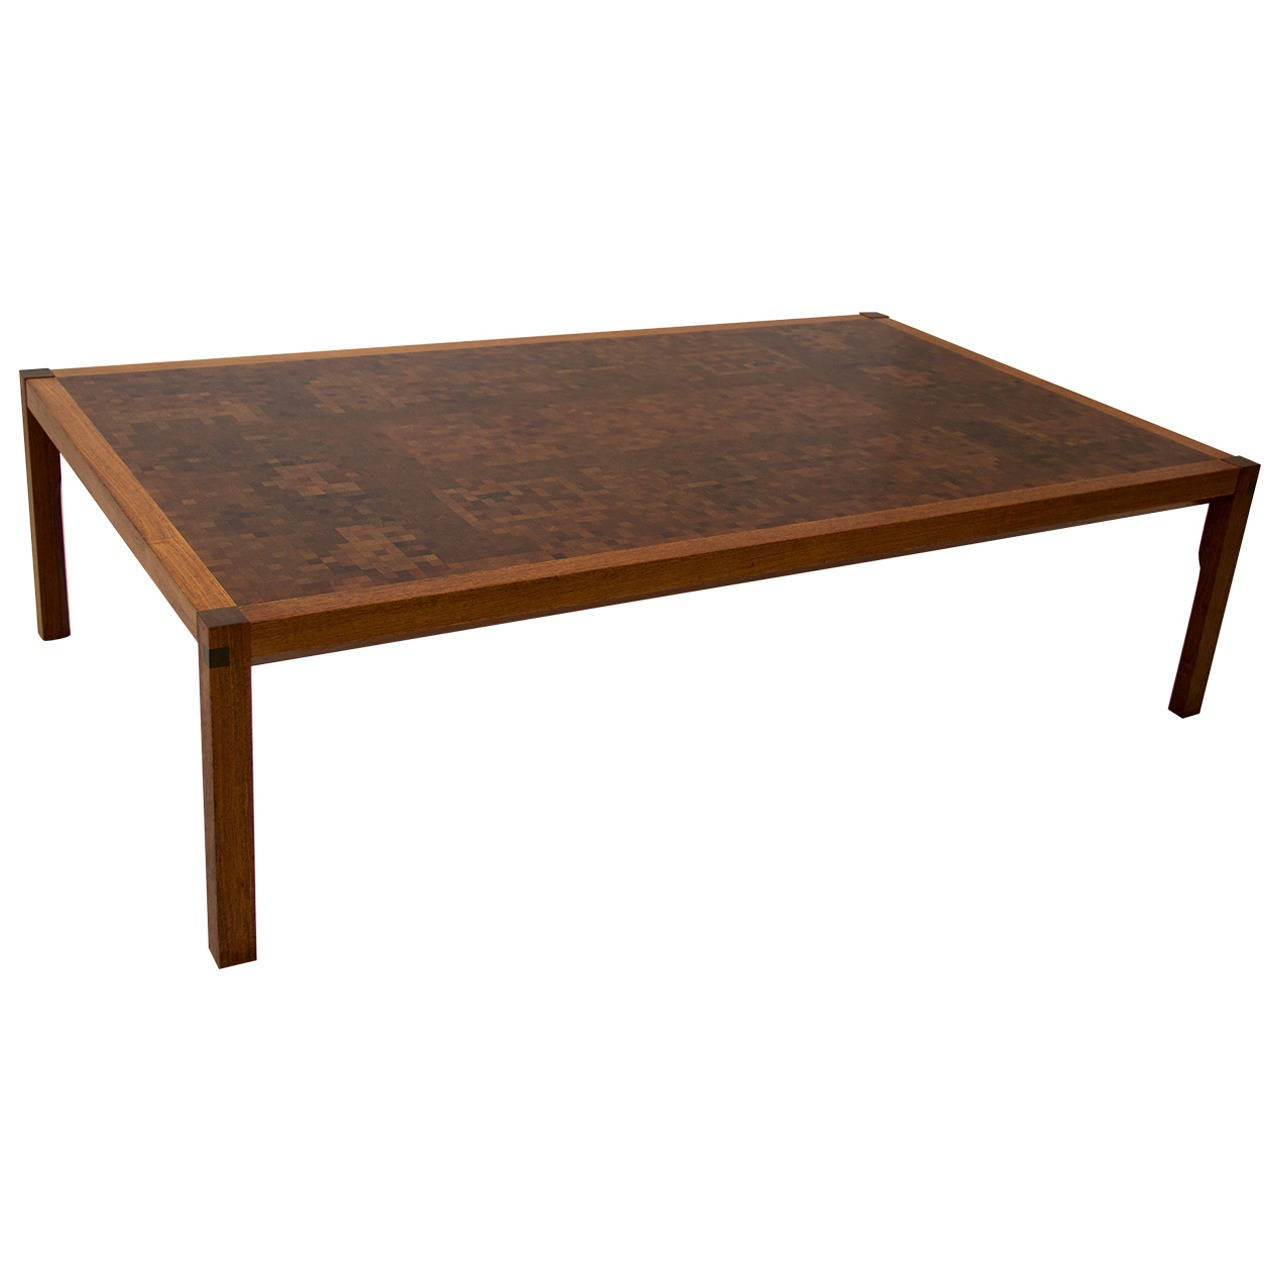 Rare Danish Handcrafted Tranekaer Studio Teak Framed Coffee Table Circa 1970 For Sale At 1stdibs